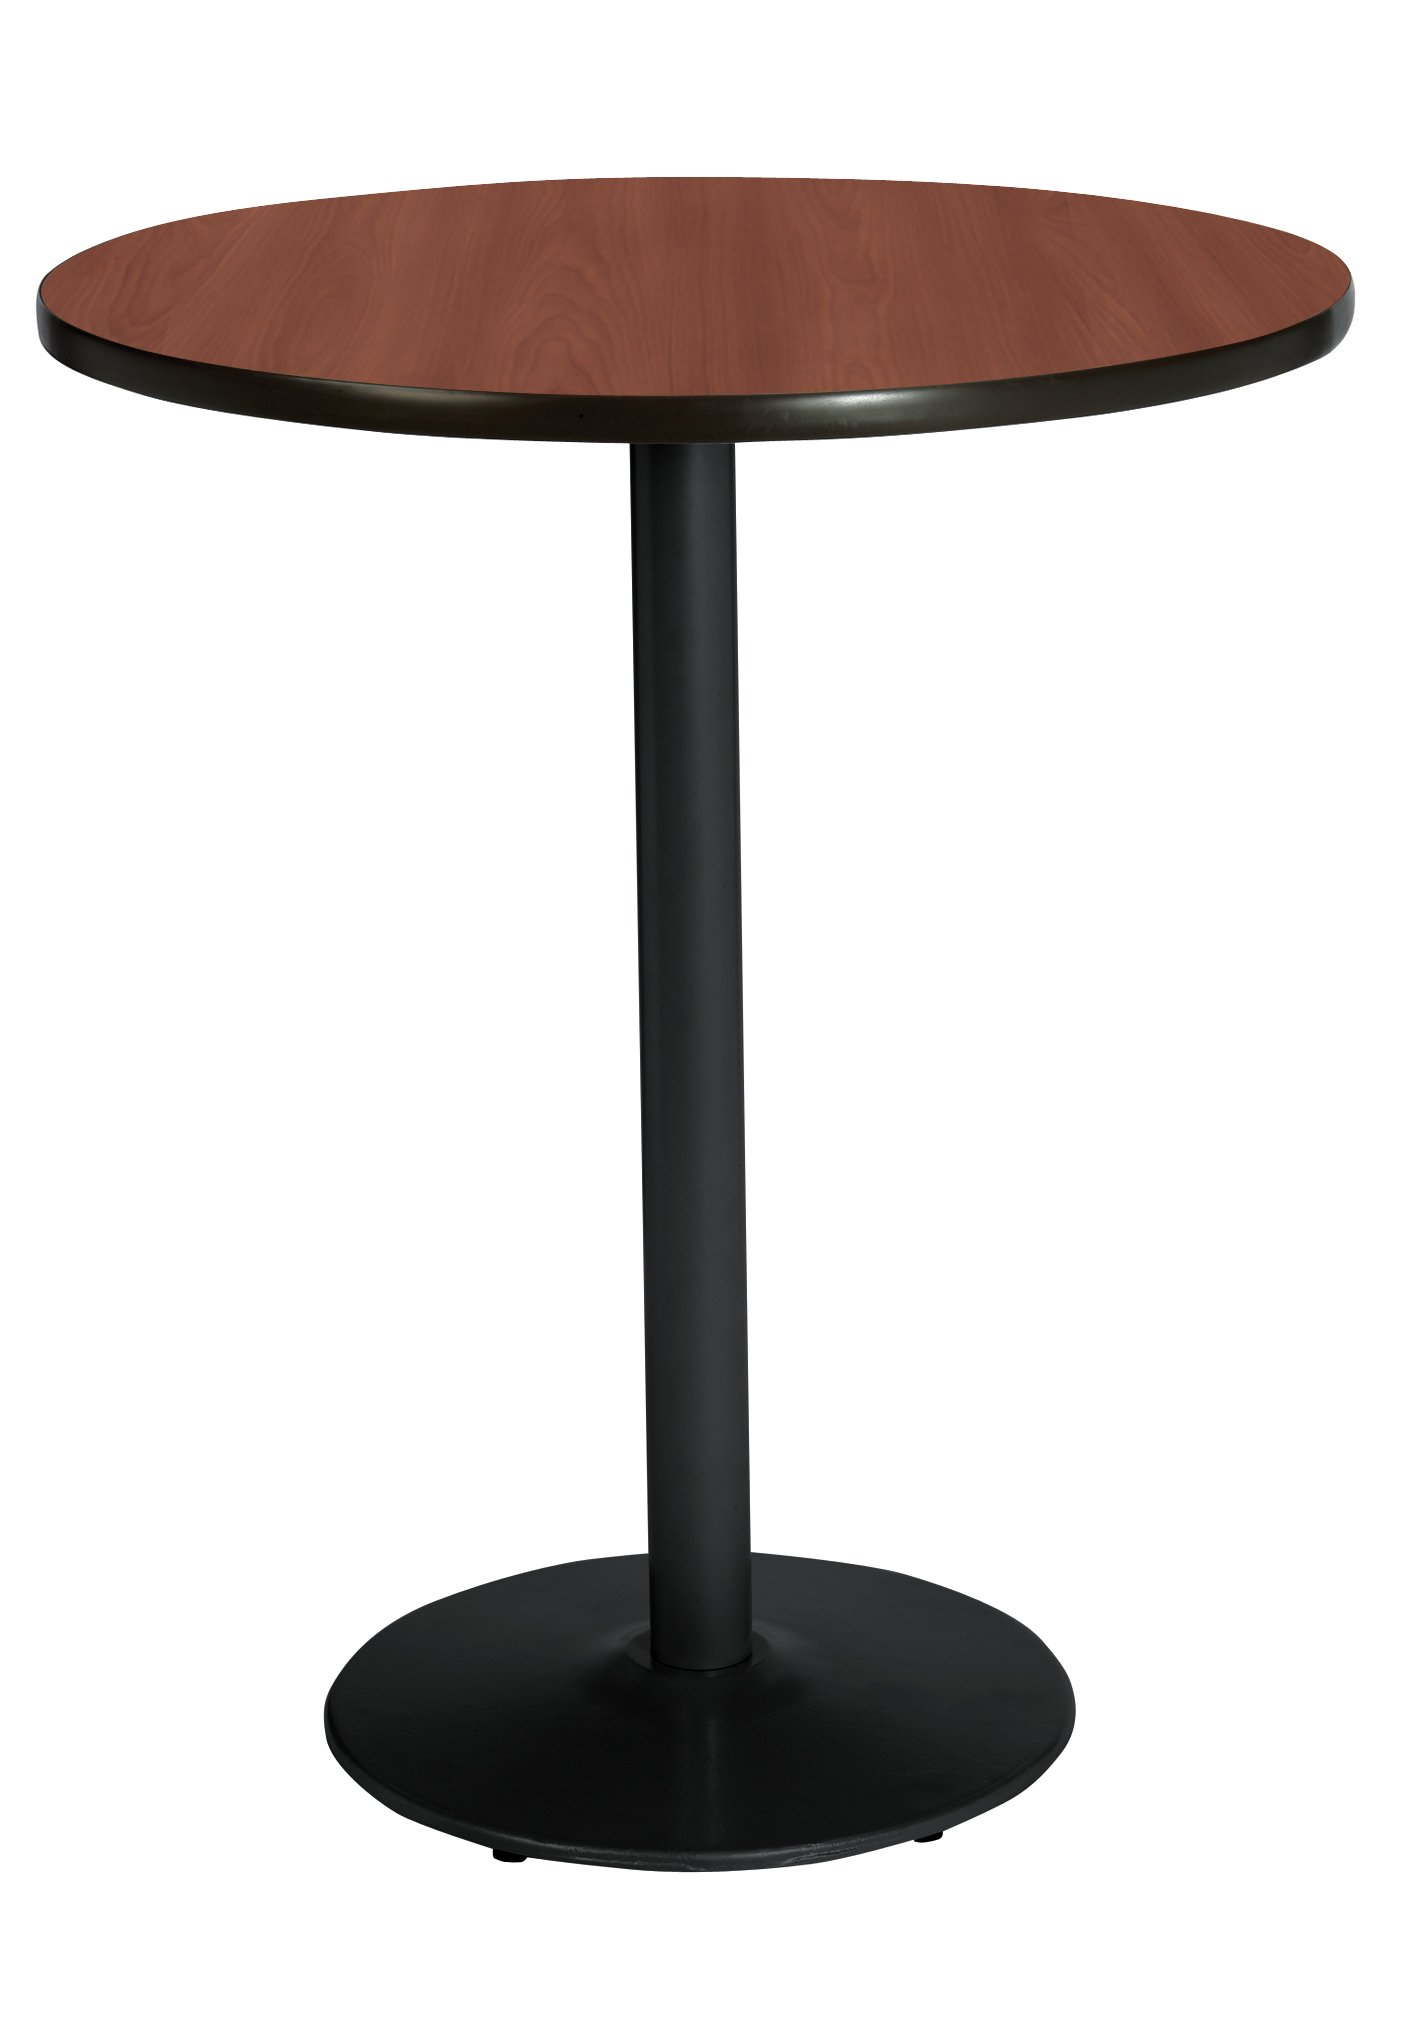 KFI Seating Bistro Height Round Black Base Pedestal Table with Top, Mahogany, 30''